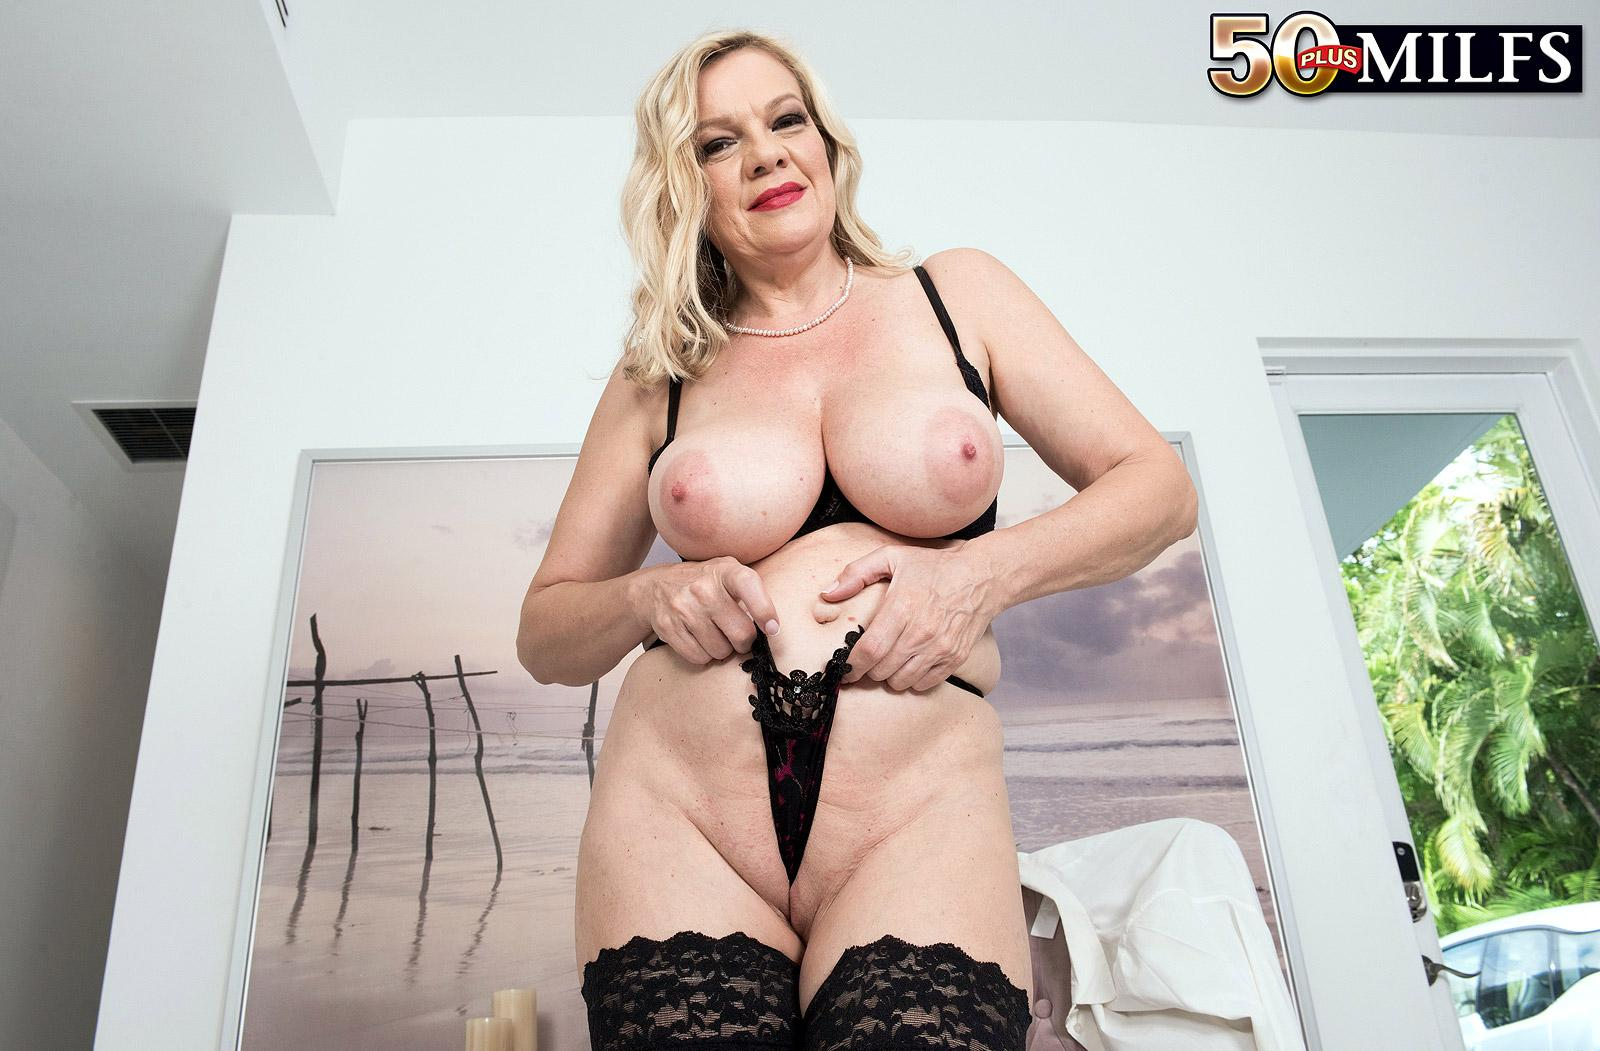 Lena Lewis, a 50 years old busty mature women spreading her legs picture 16